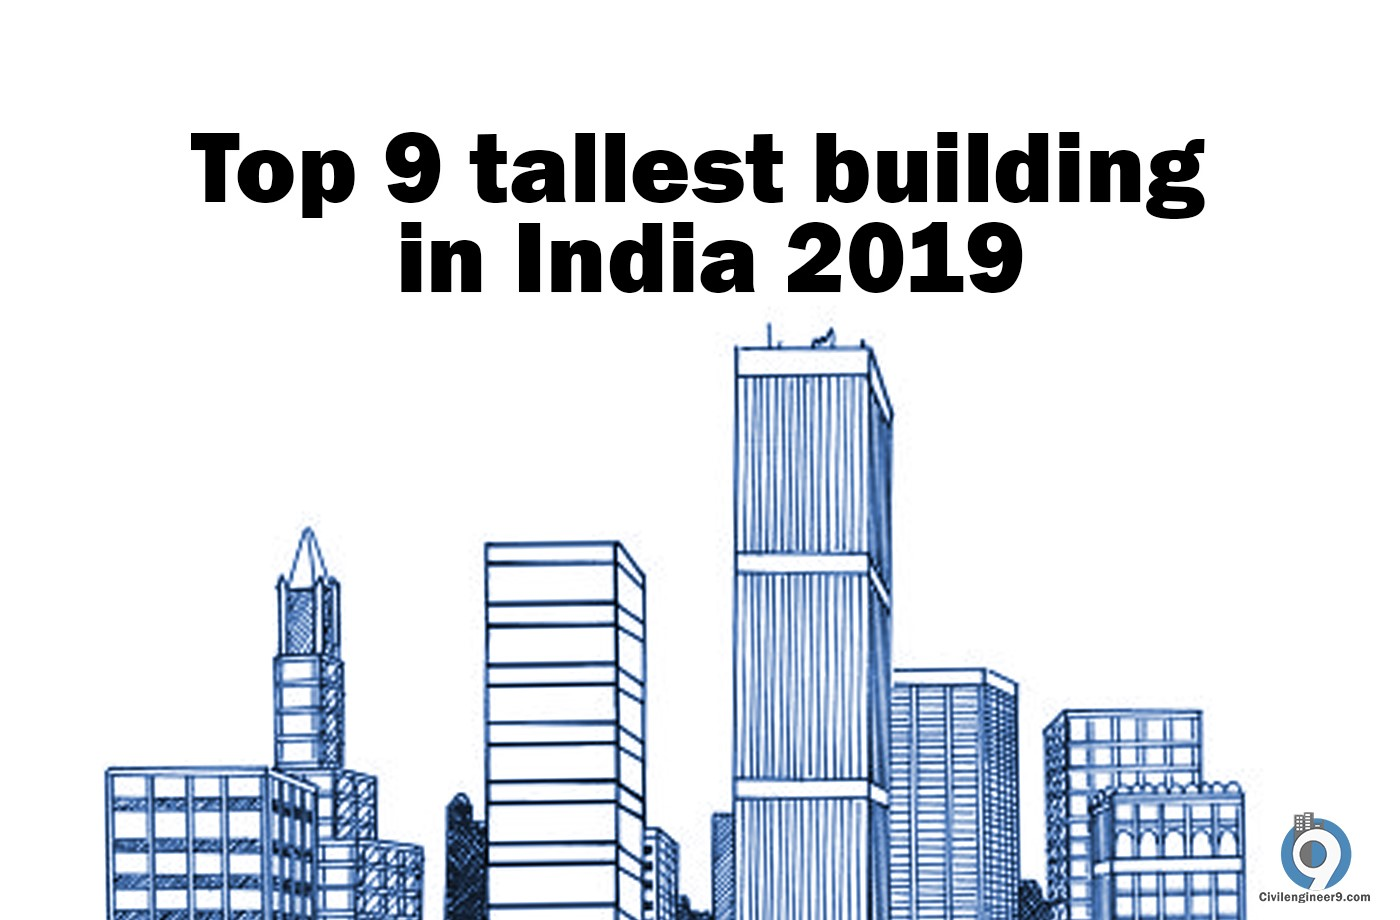 tallest-building-in-the-India